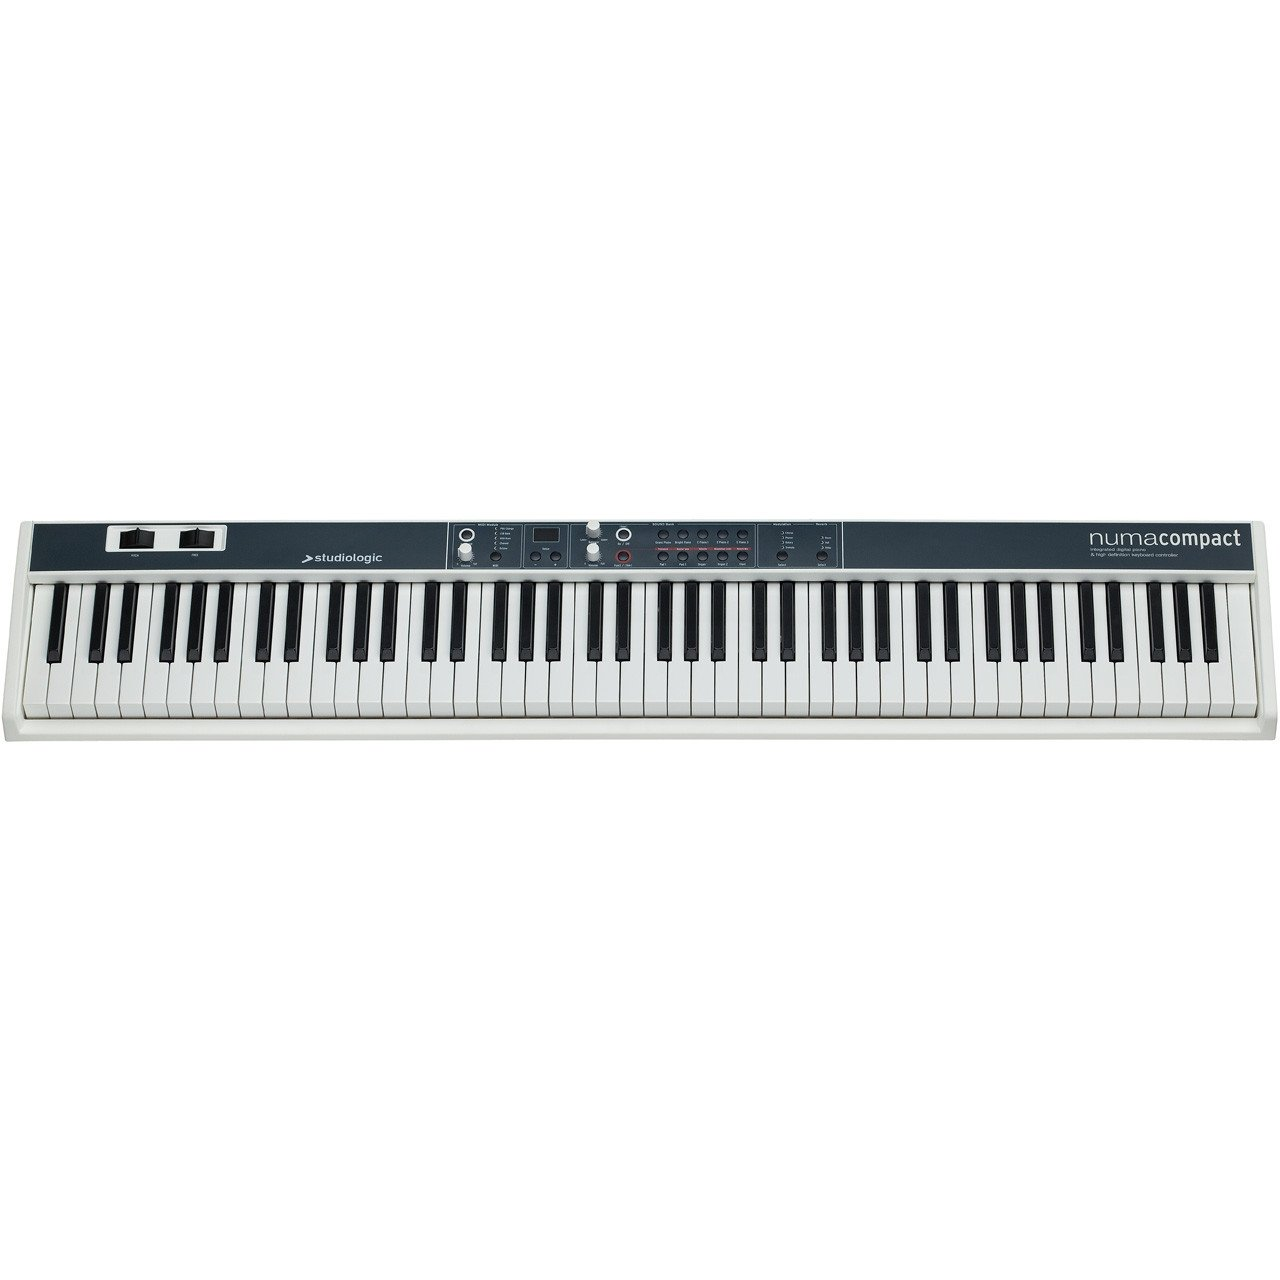 Digital Pianos - Studiologic Numa Compact - 88 Note Stage Piano And MIDI Keyboard